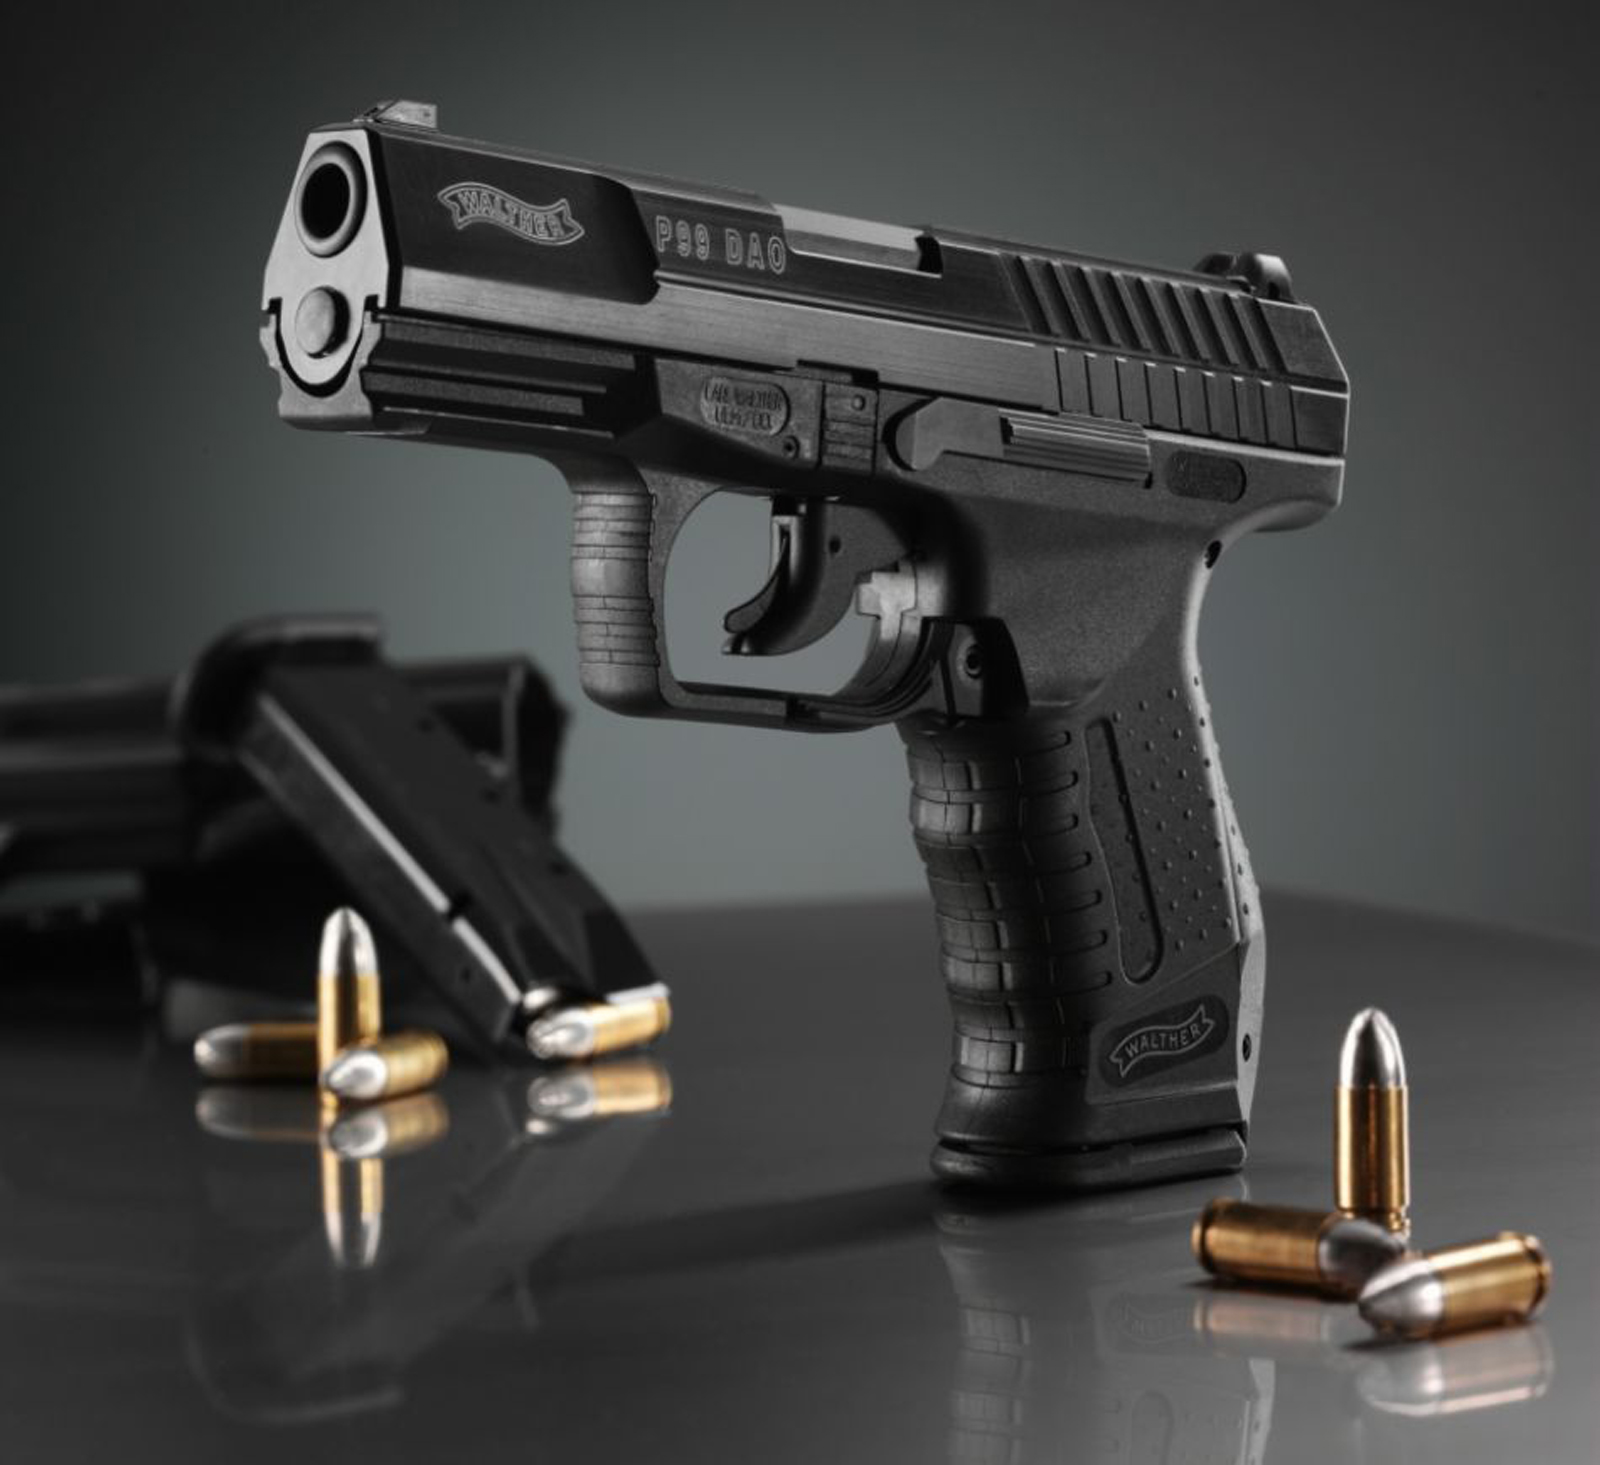 Free Download Walther P 99 As Hd Gun Wallpapers Download